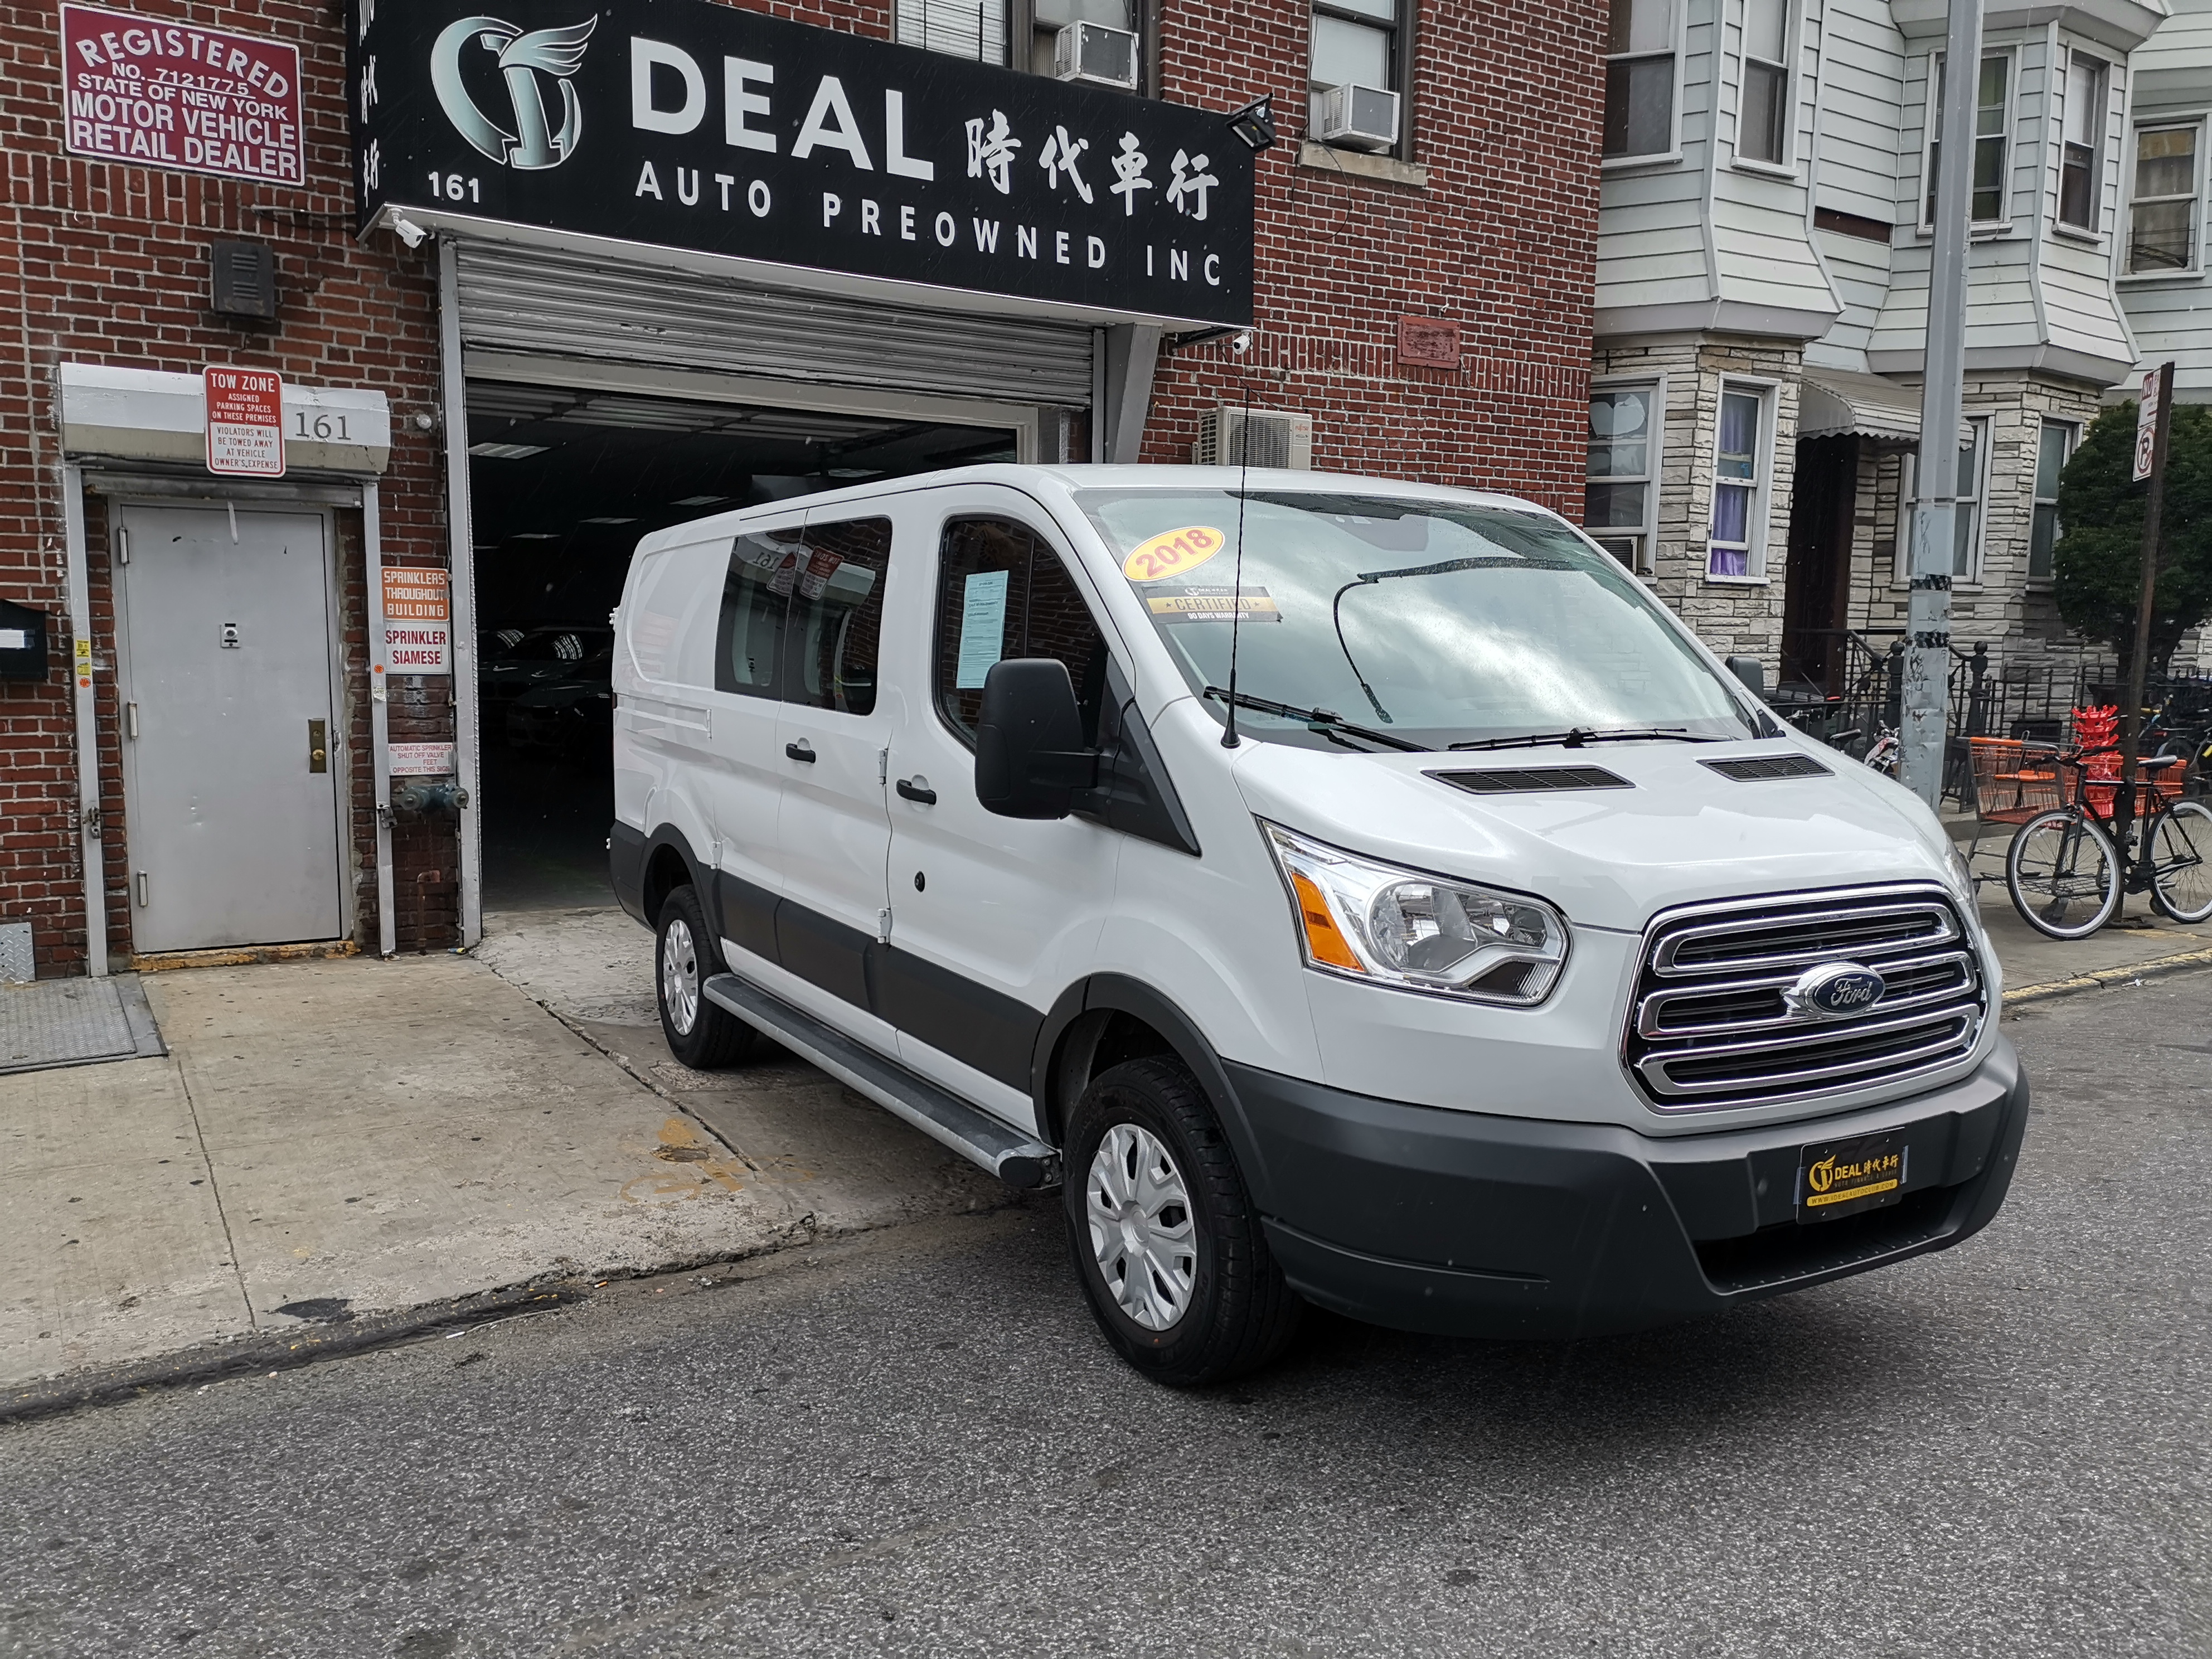 da5fd1977a 2018 FORD TRANSIT 250 VAN LOW ROOF 60 40 PASS.130-IN. WB WHITE GRAY ...